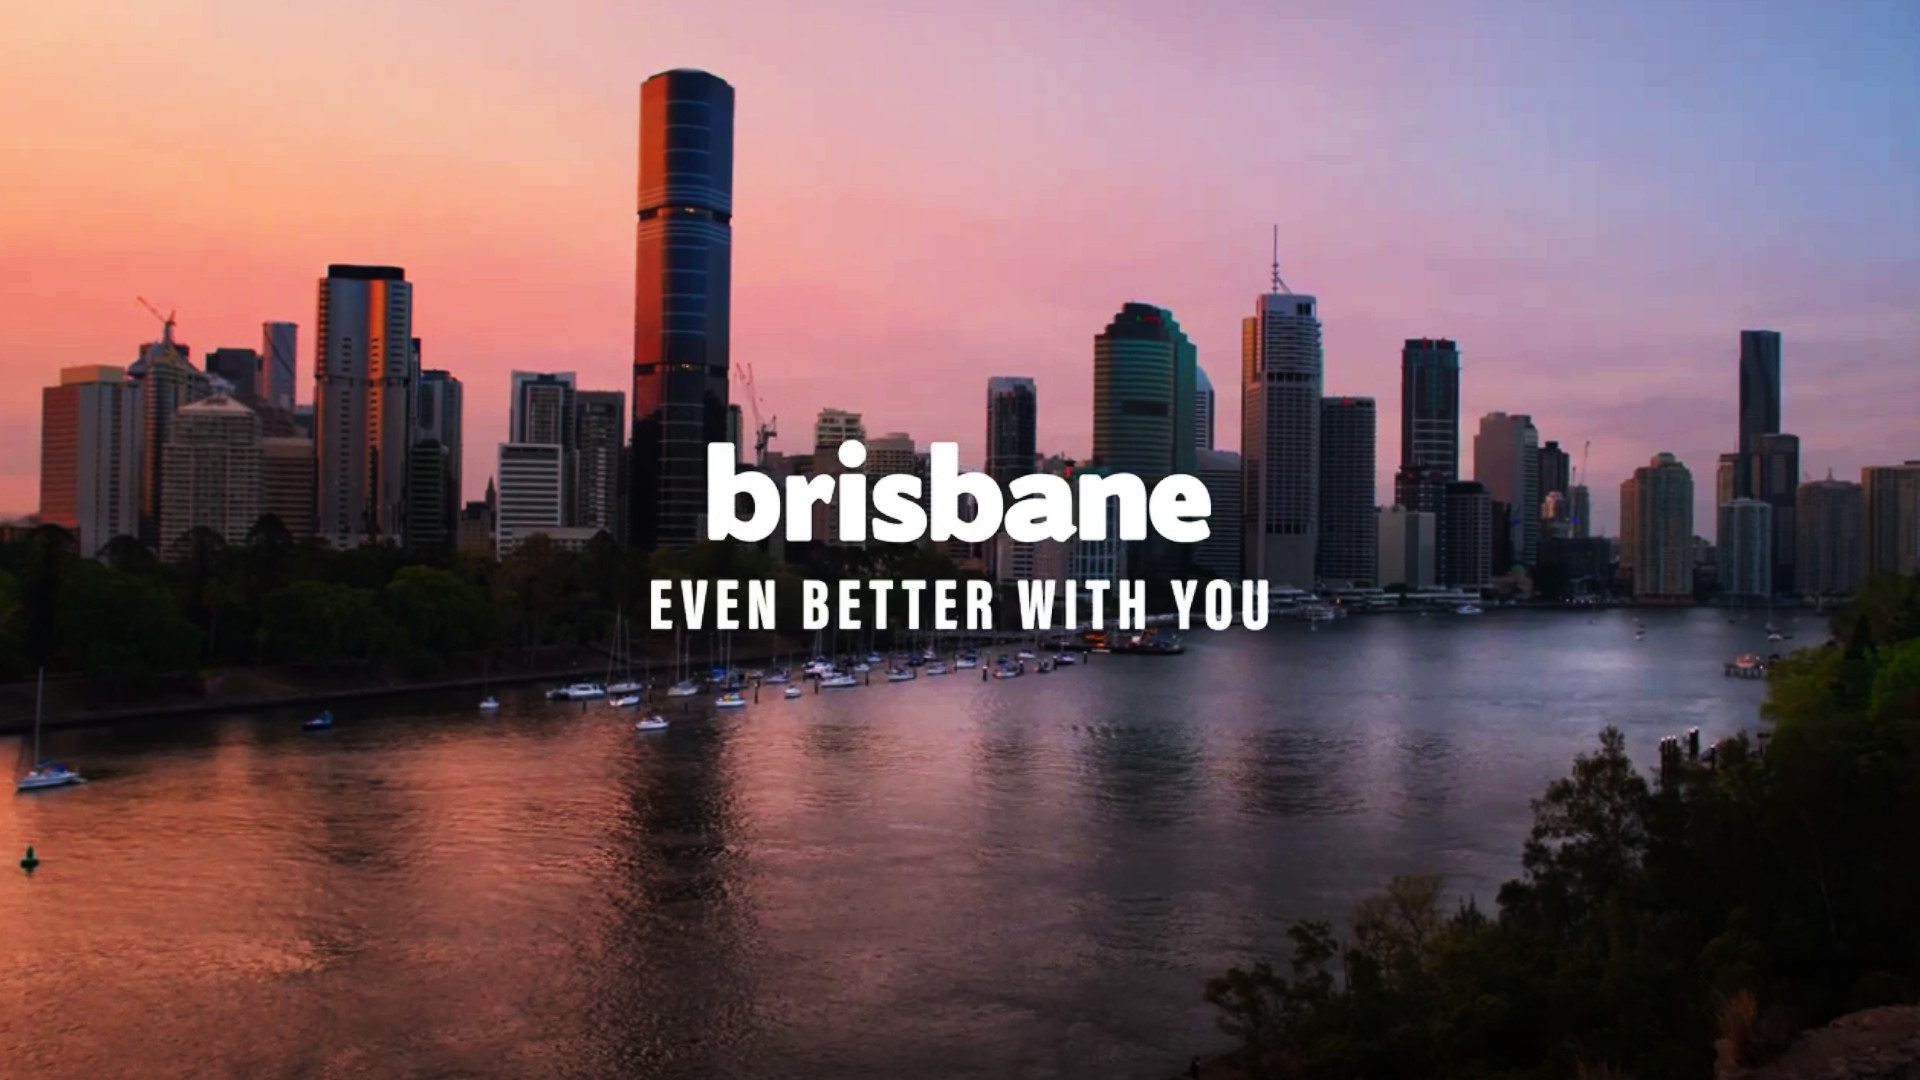 """Brisbane. Even Better with You."" Tourism Campaign"